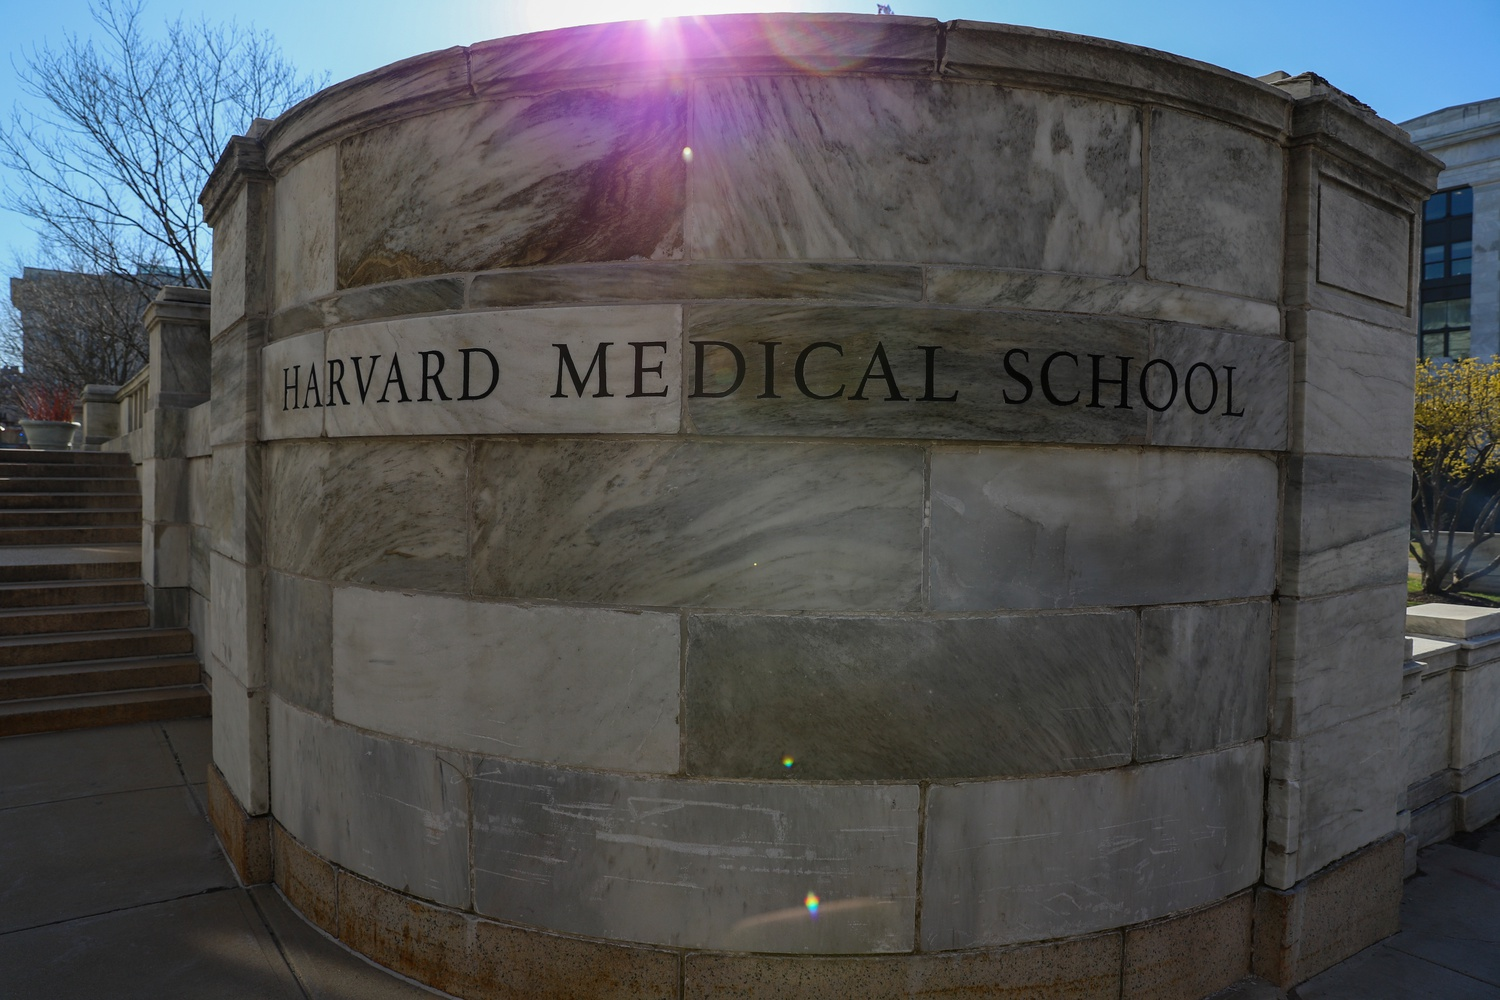 Harvard Medical School Dean George Q. Daley '82 said in an interview Friday that the school devoted nearly all its resources to fighting COVID-19 this spring.